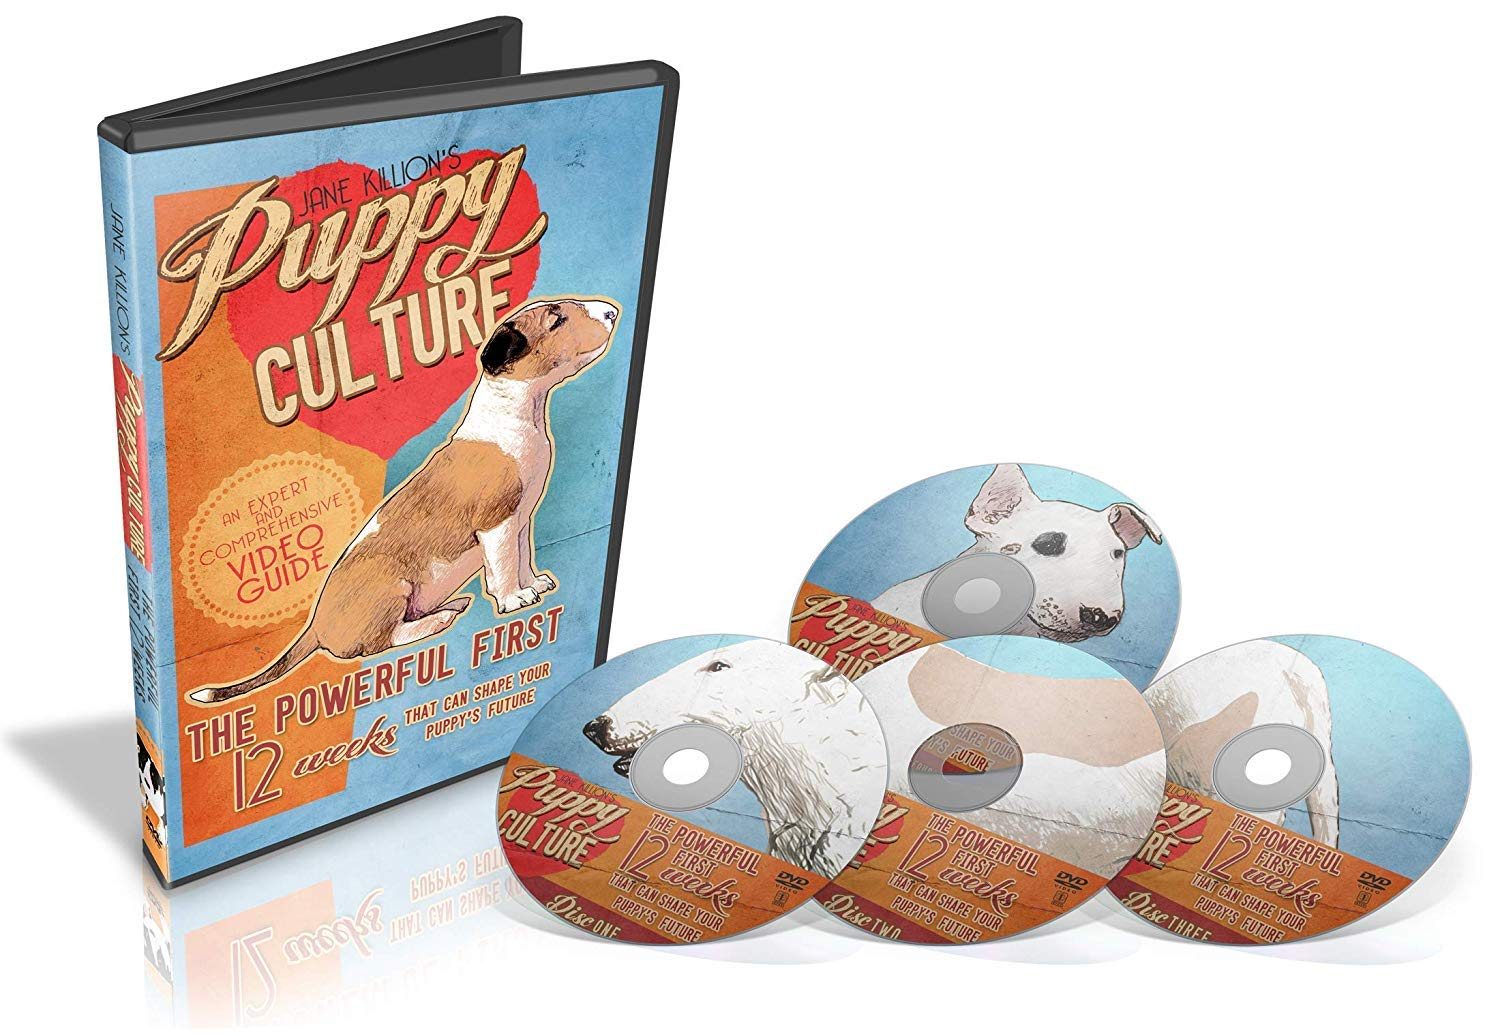 Puppy Culture: The Powerful First 12 Weeks That Can Shape Your Puppy's Future DVD Edition by Puppy Culture